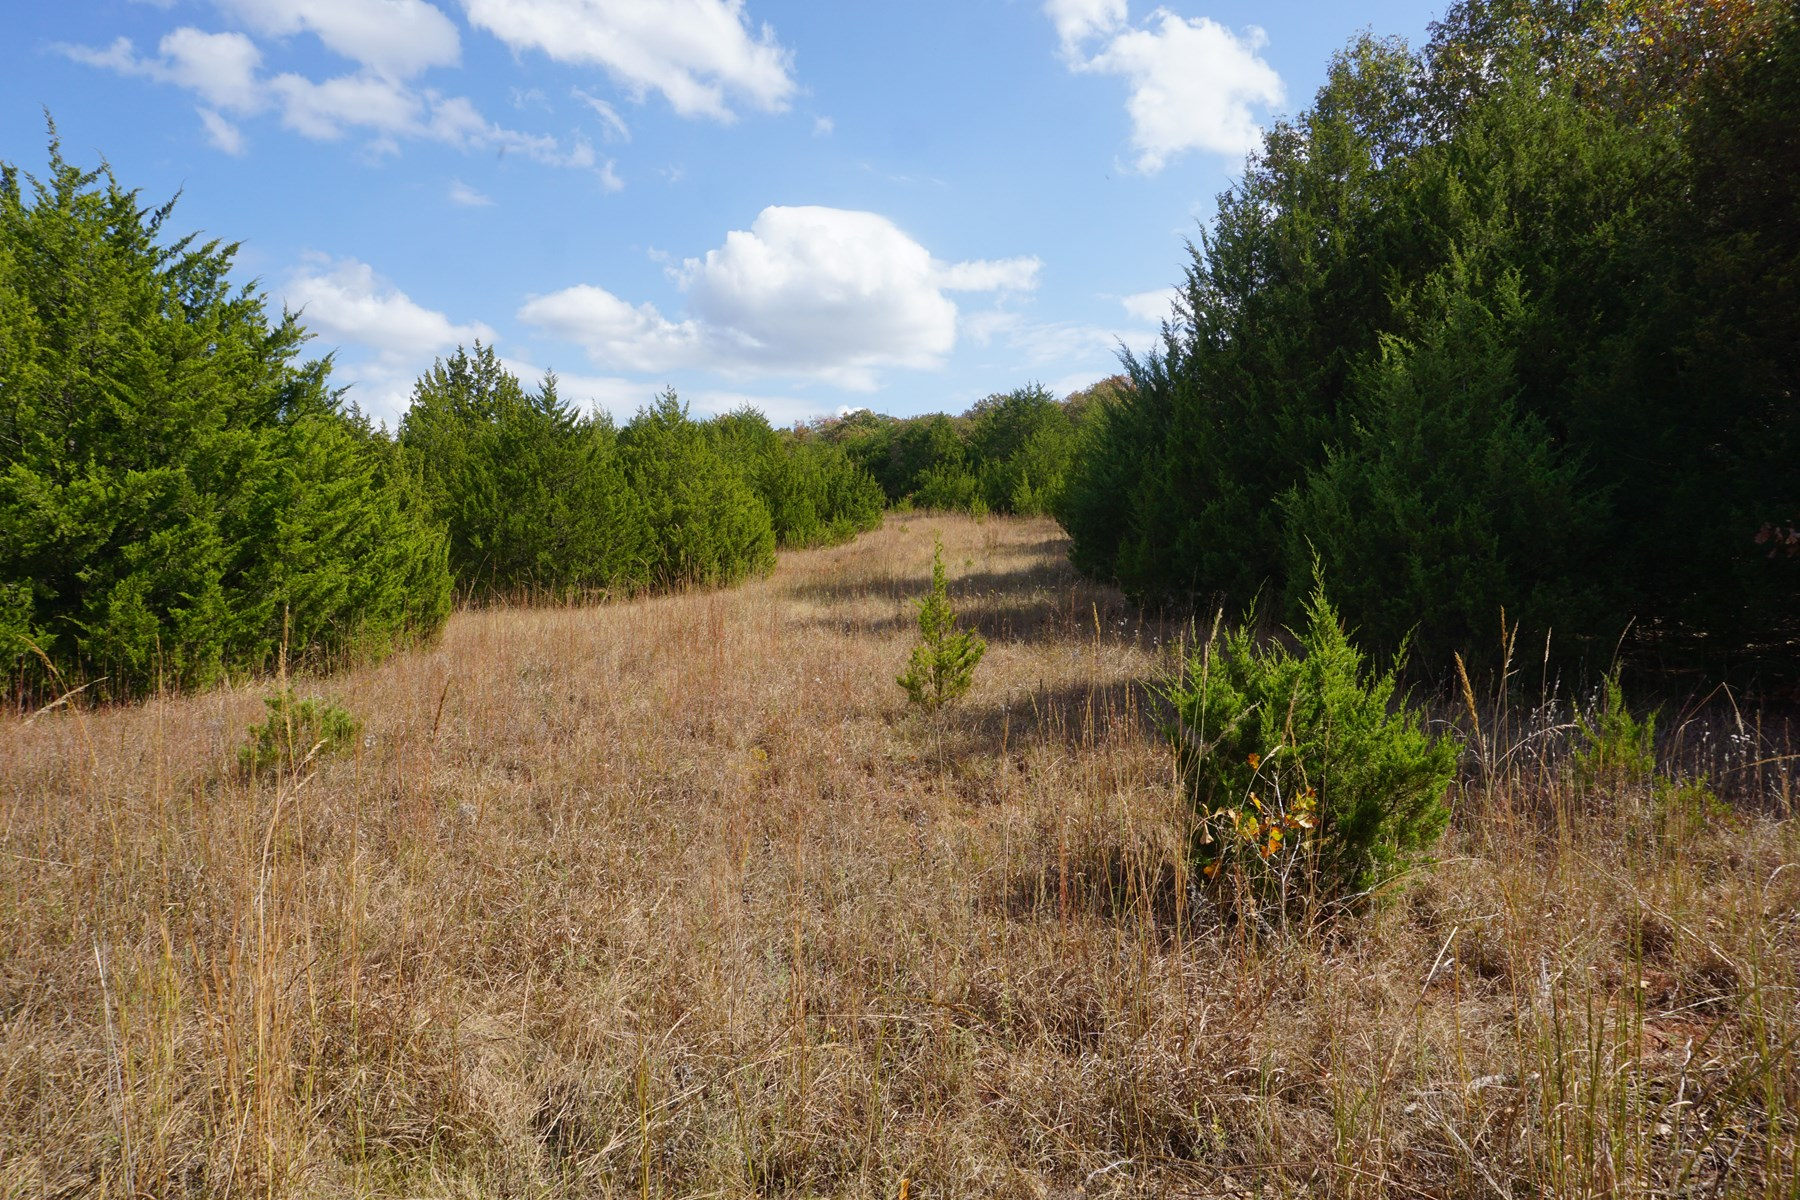 No Reserve Land Auction, 79 Acres +/-, Nov 22 @ 1:30